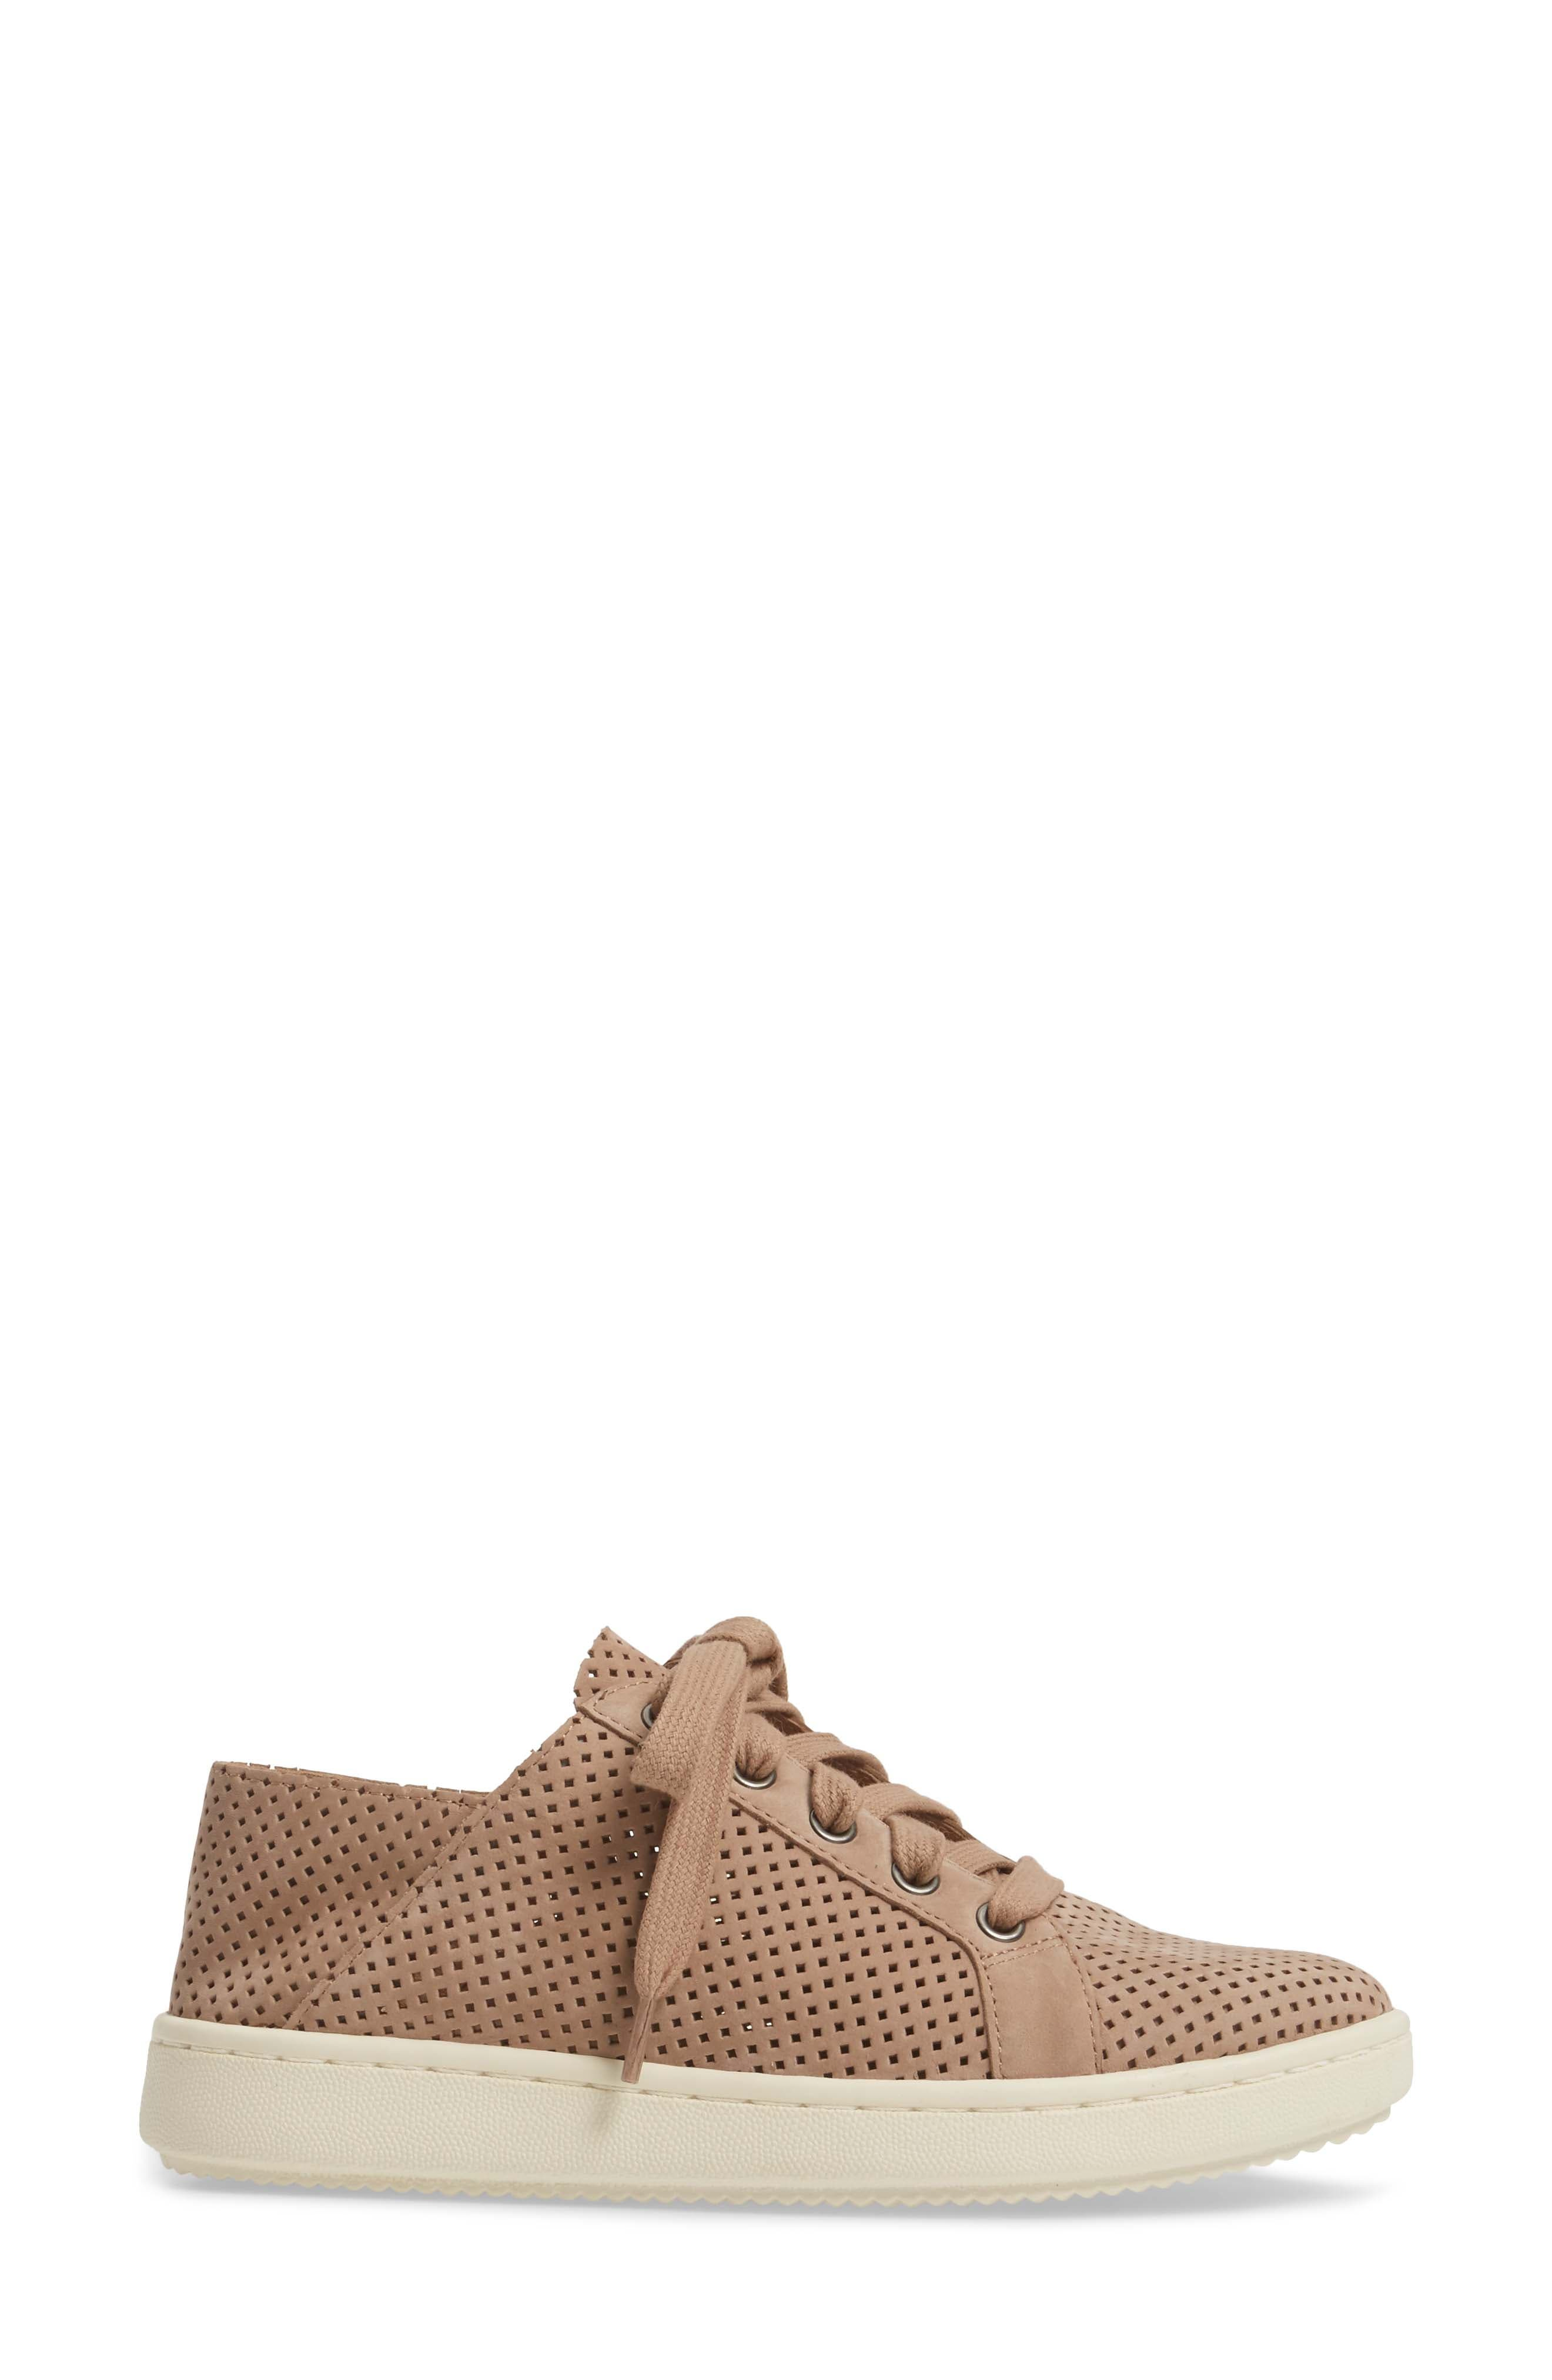 Clifton Perforated Sneaker,                             Alternate thumbnail 3, color,                             Earth Perforated Leather